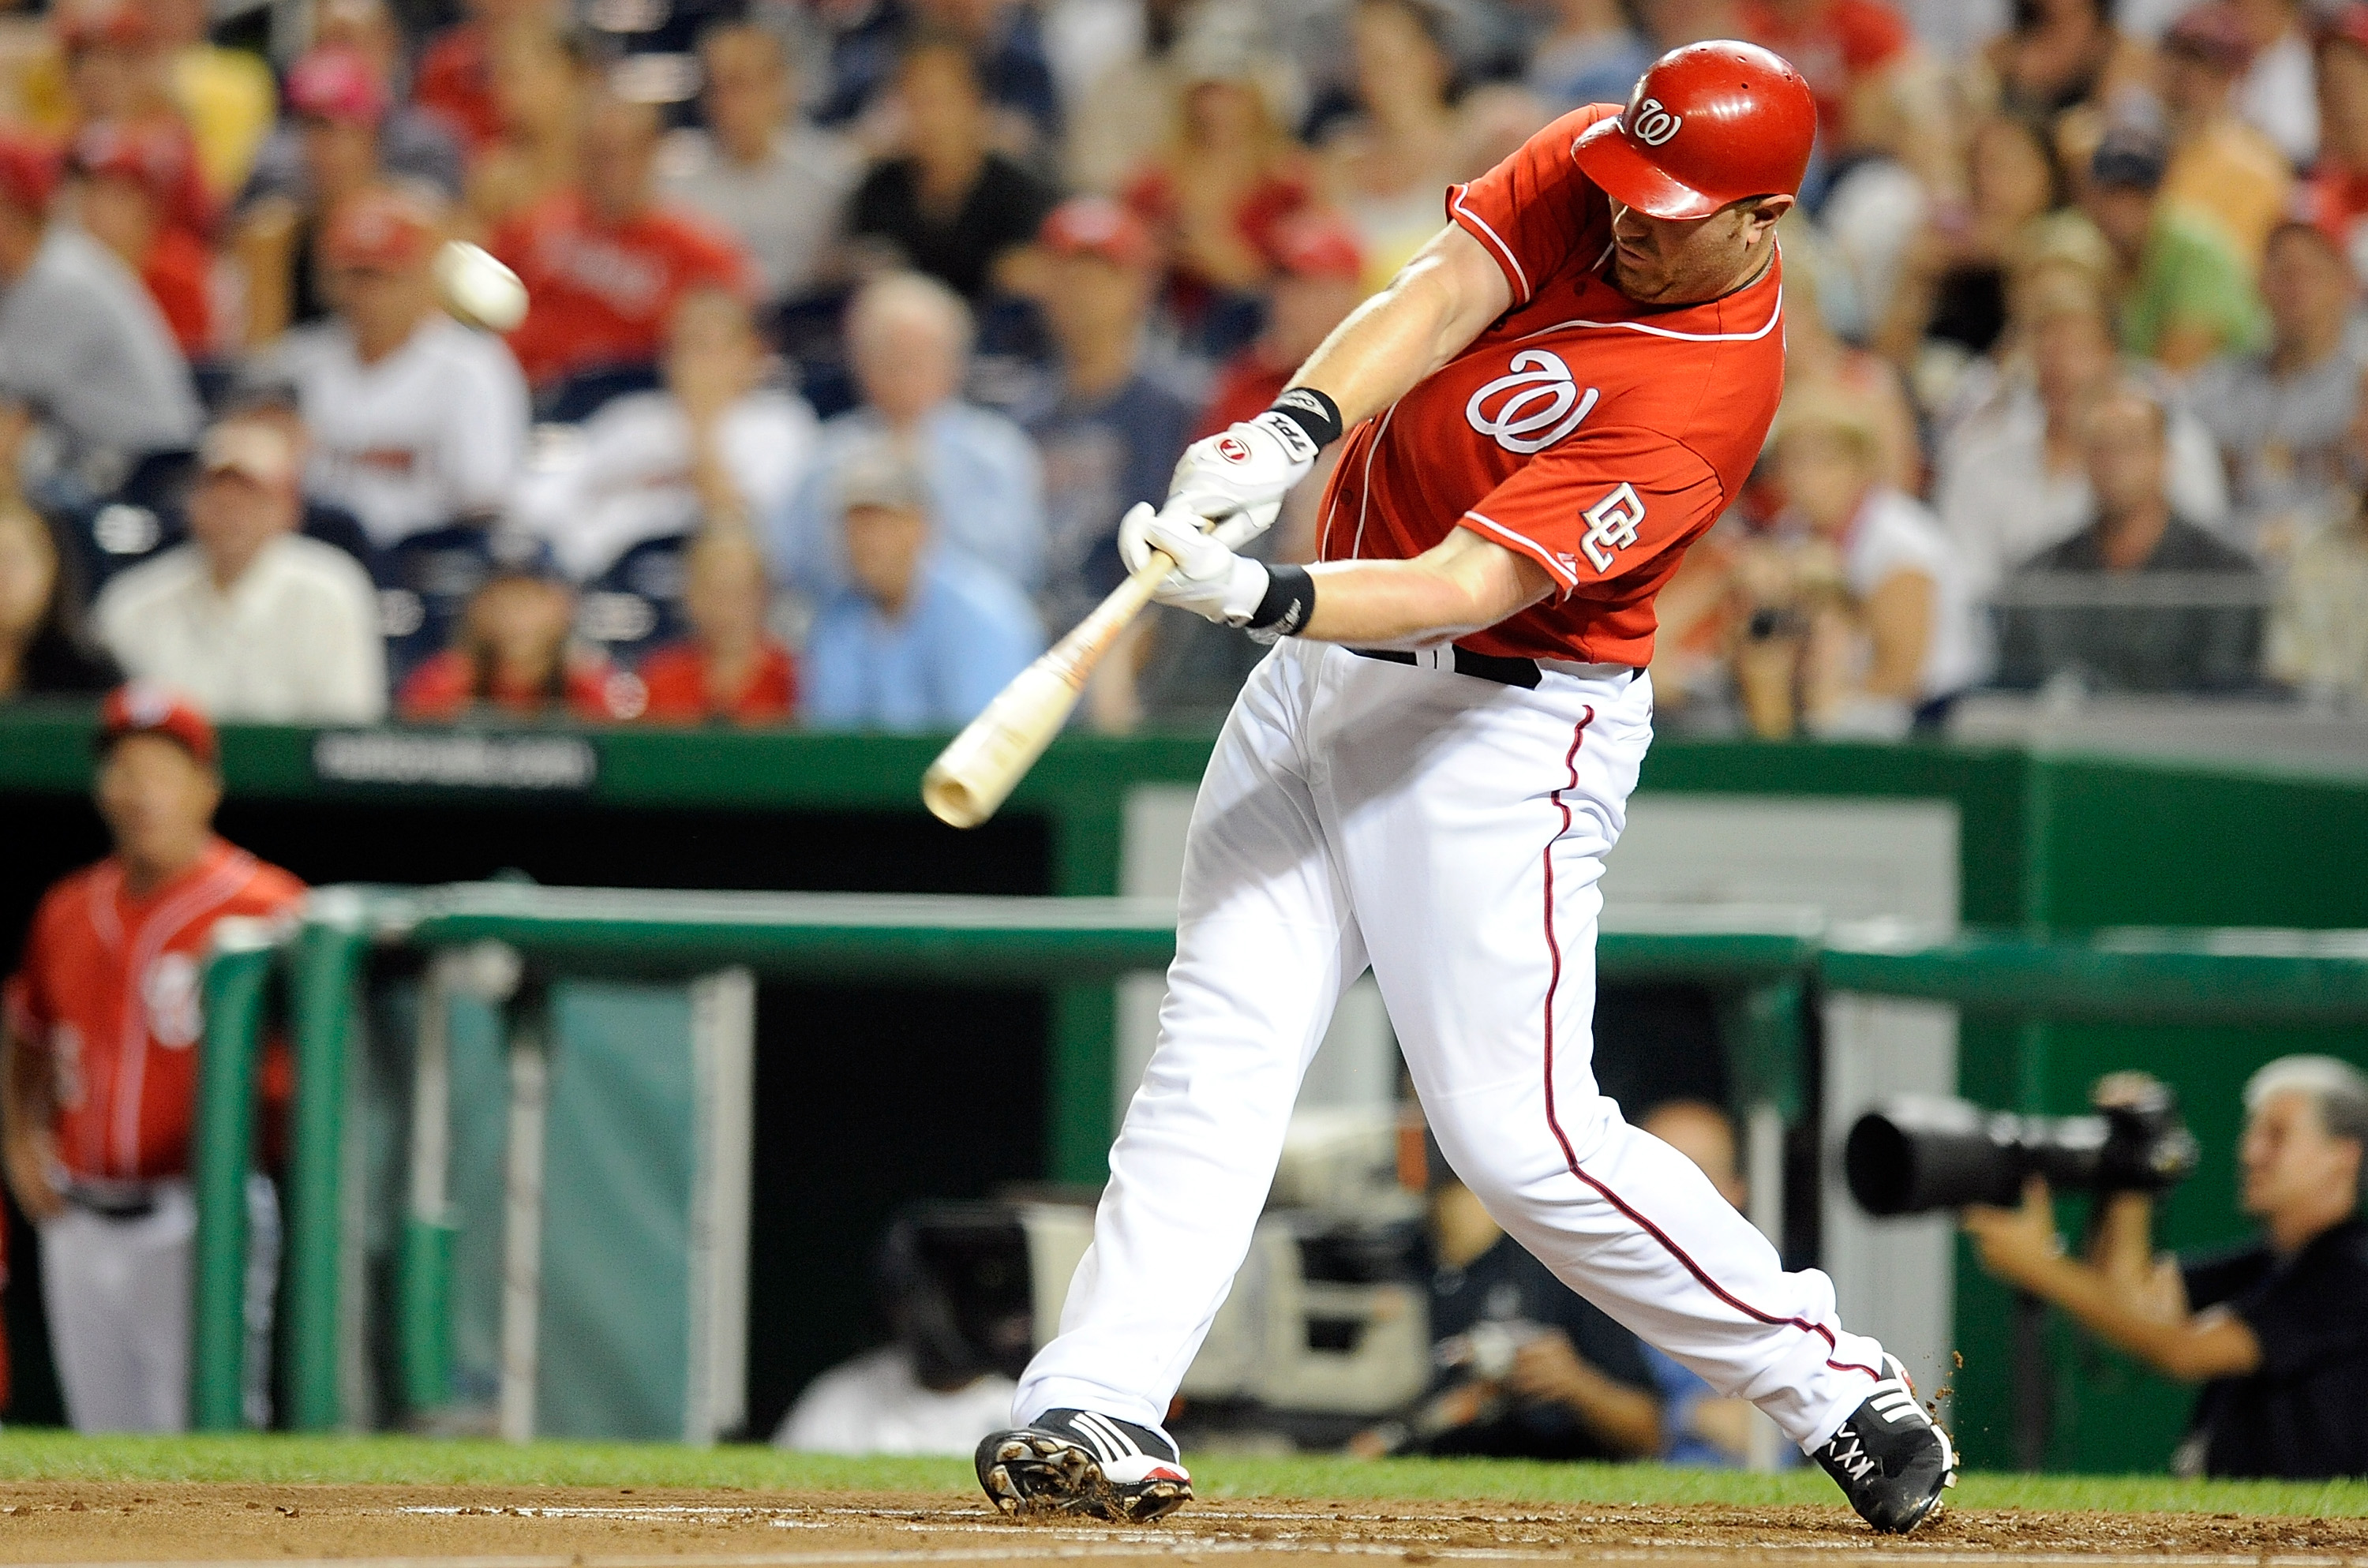 WASHINGTON - SEPTEMBER 24:  Adam Dunn #44 of the Washington Nationals hits a home run in the second inning against the Atlanta Braves at Nationals Park on September 24, 2010 in Washington, DC.  (Photo by Greg Fiume/Getty Images)